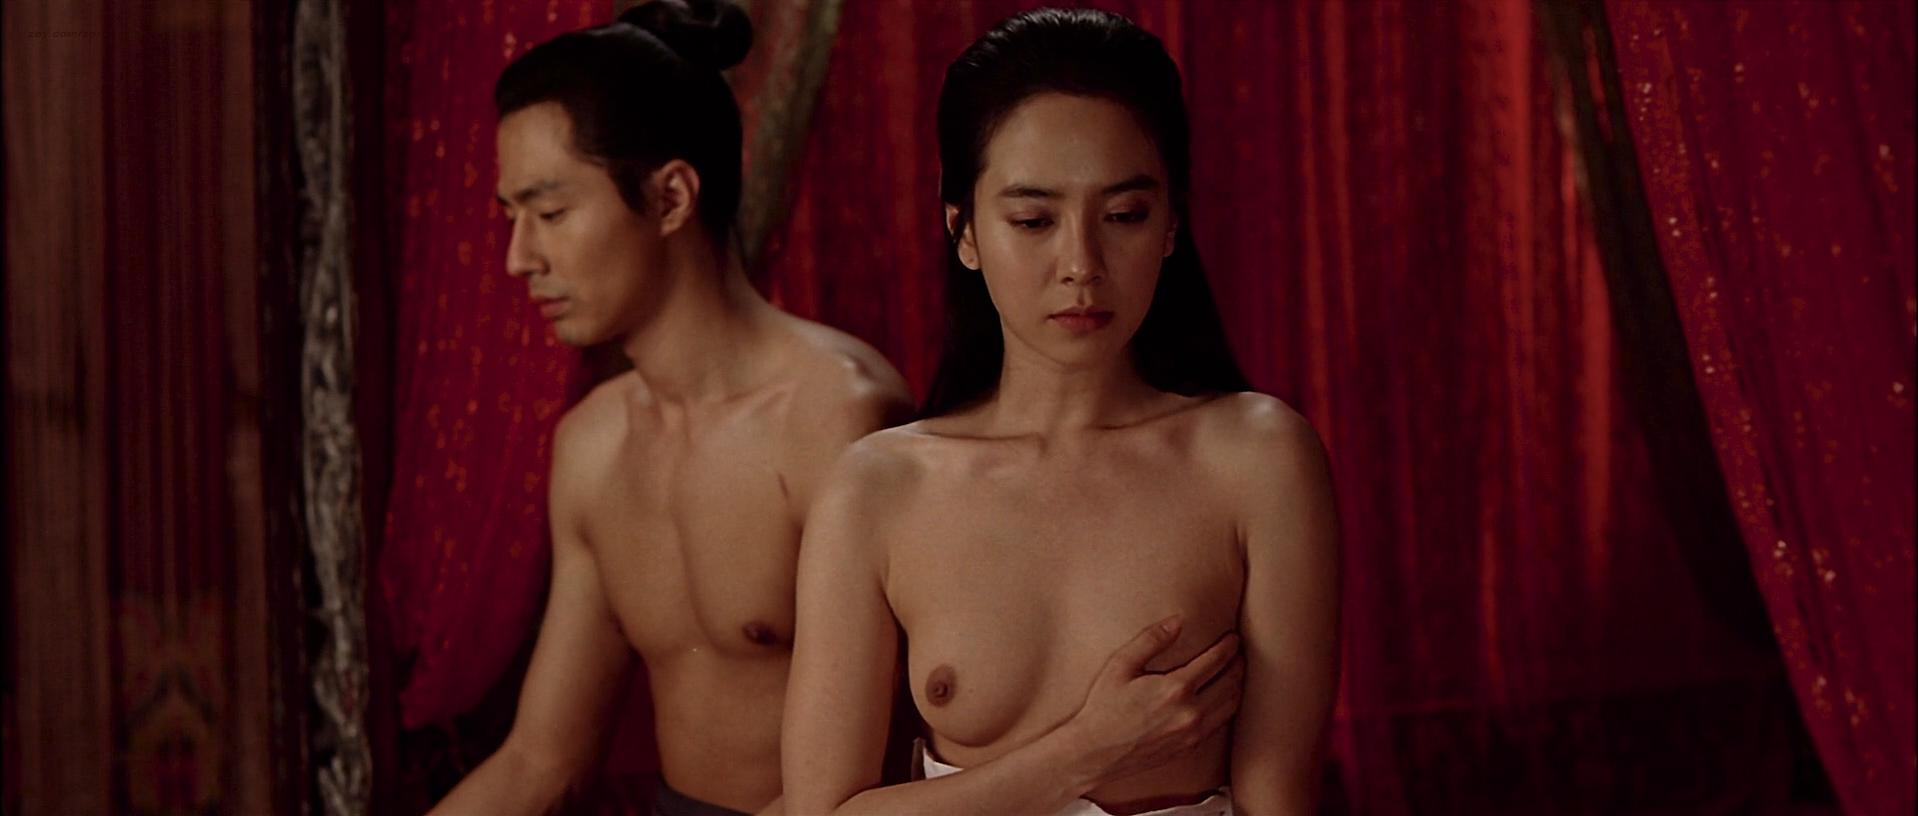 Filipino Actress Rues Doing Nude Scenes In The Past, Entertainment News